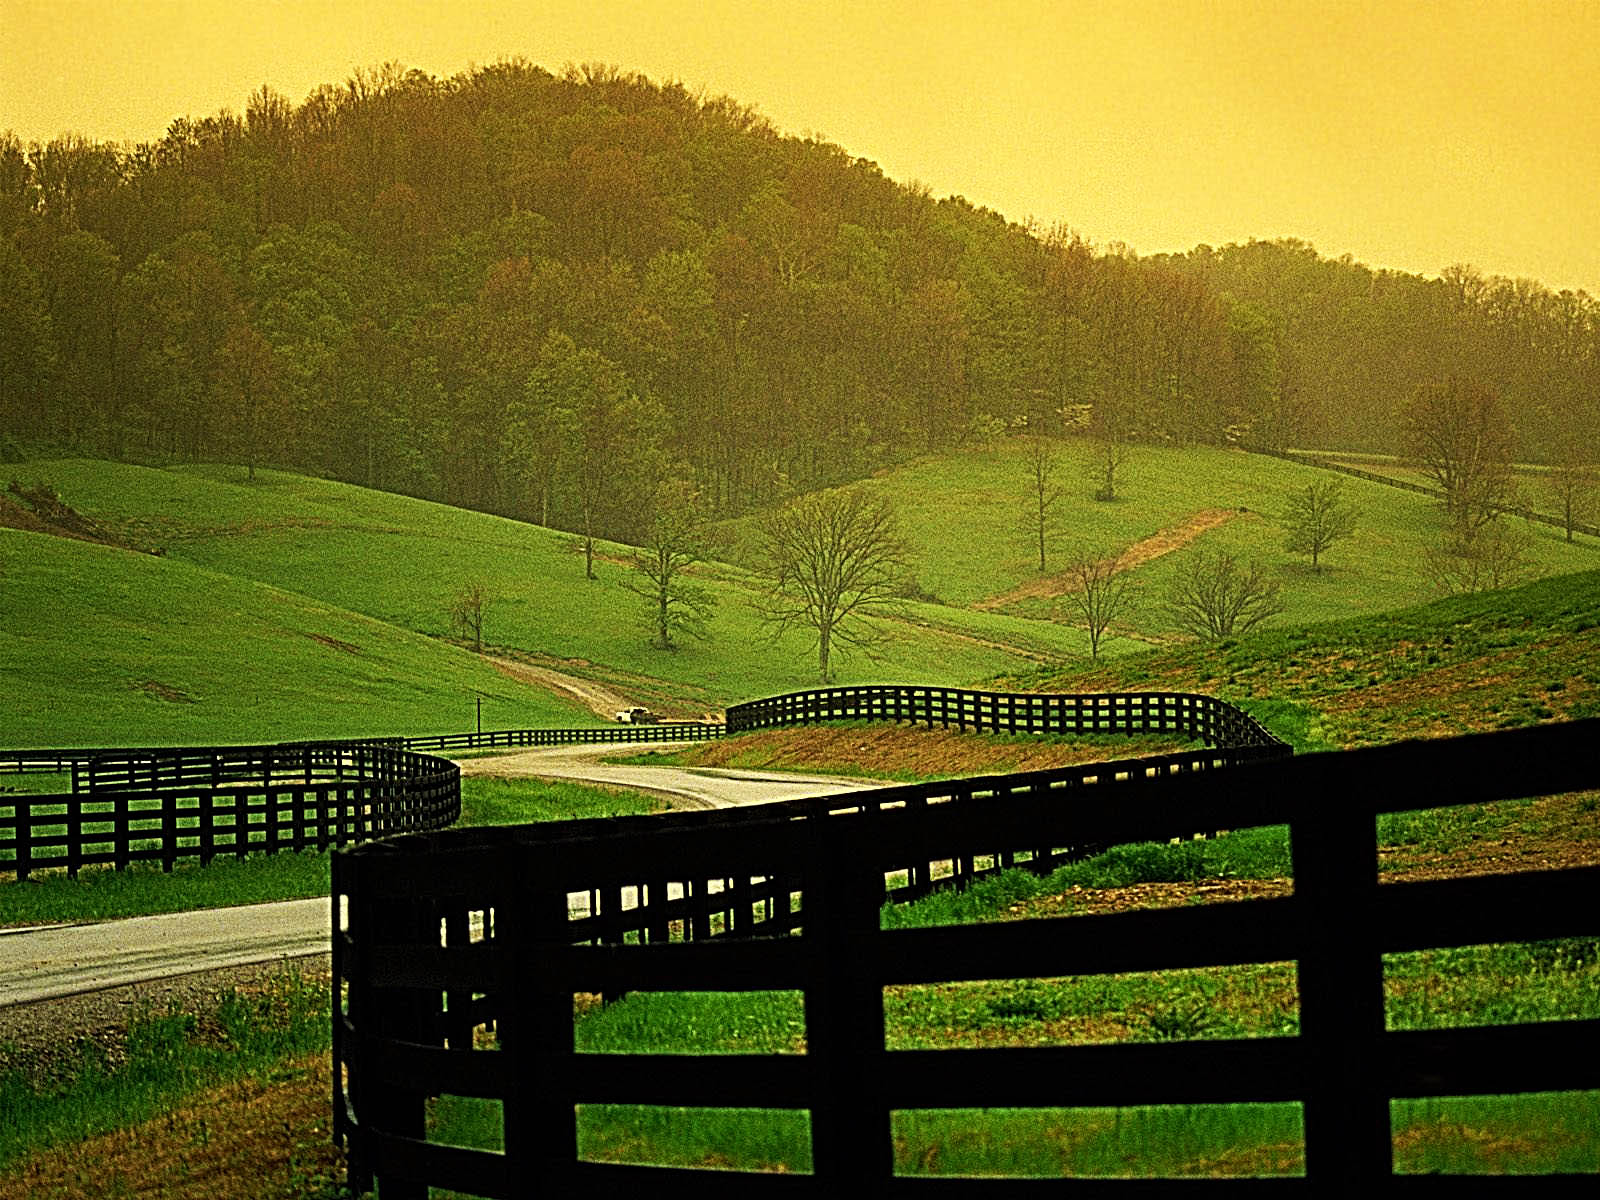 Free HD Images FIFCU Purchased Peaceful Countryside